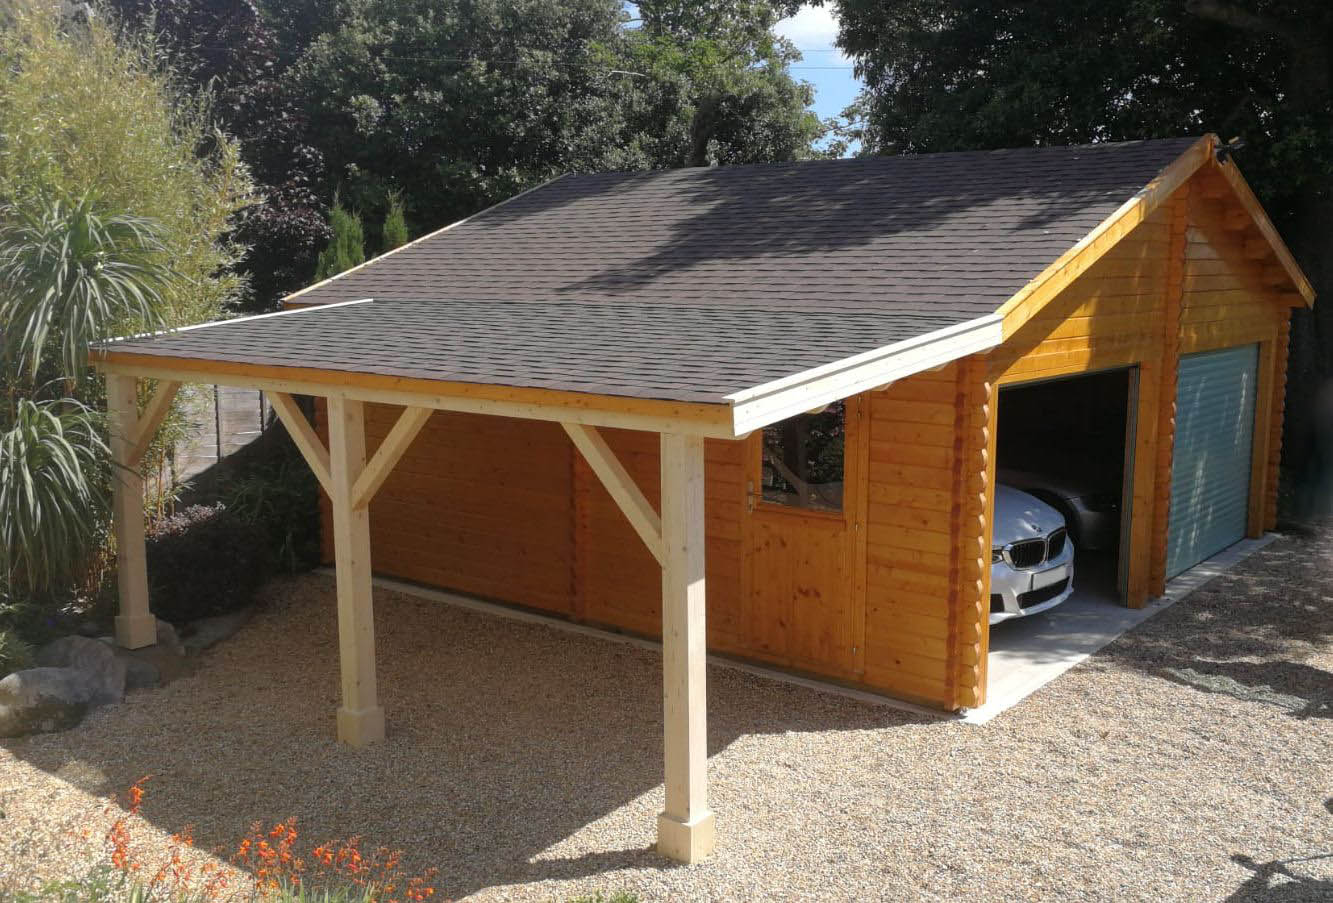 Keops Interlock Garages Workshops Keops Interlock Log Cabins